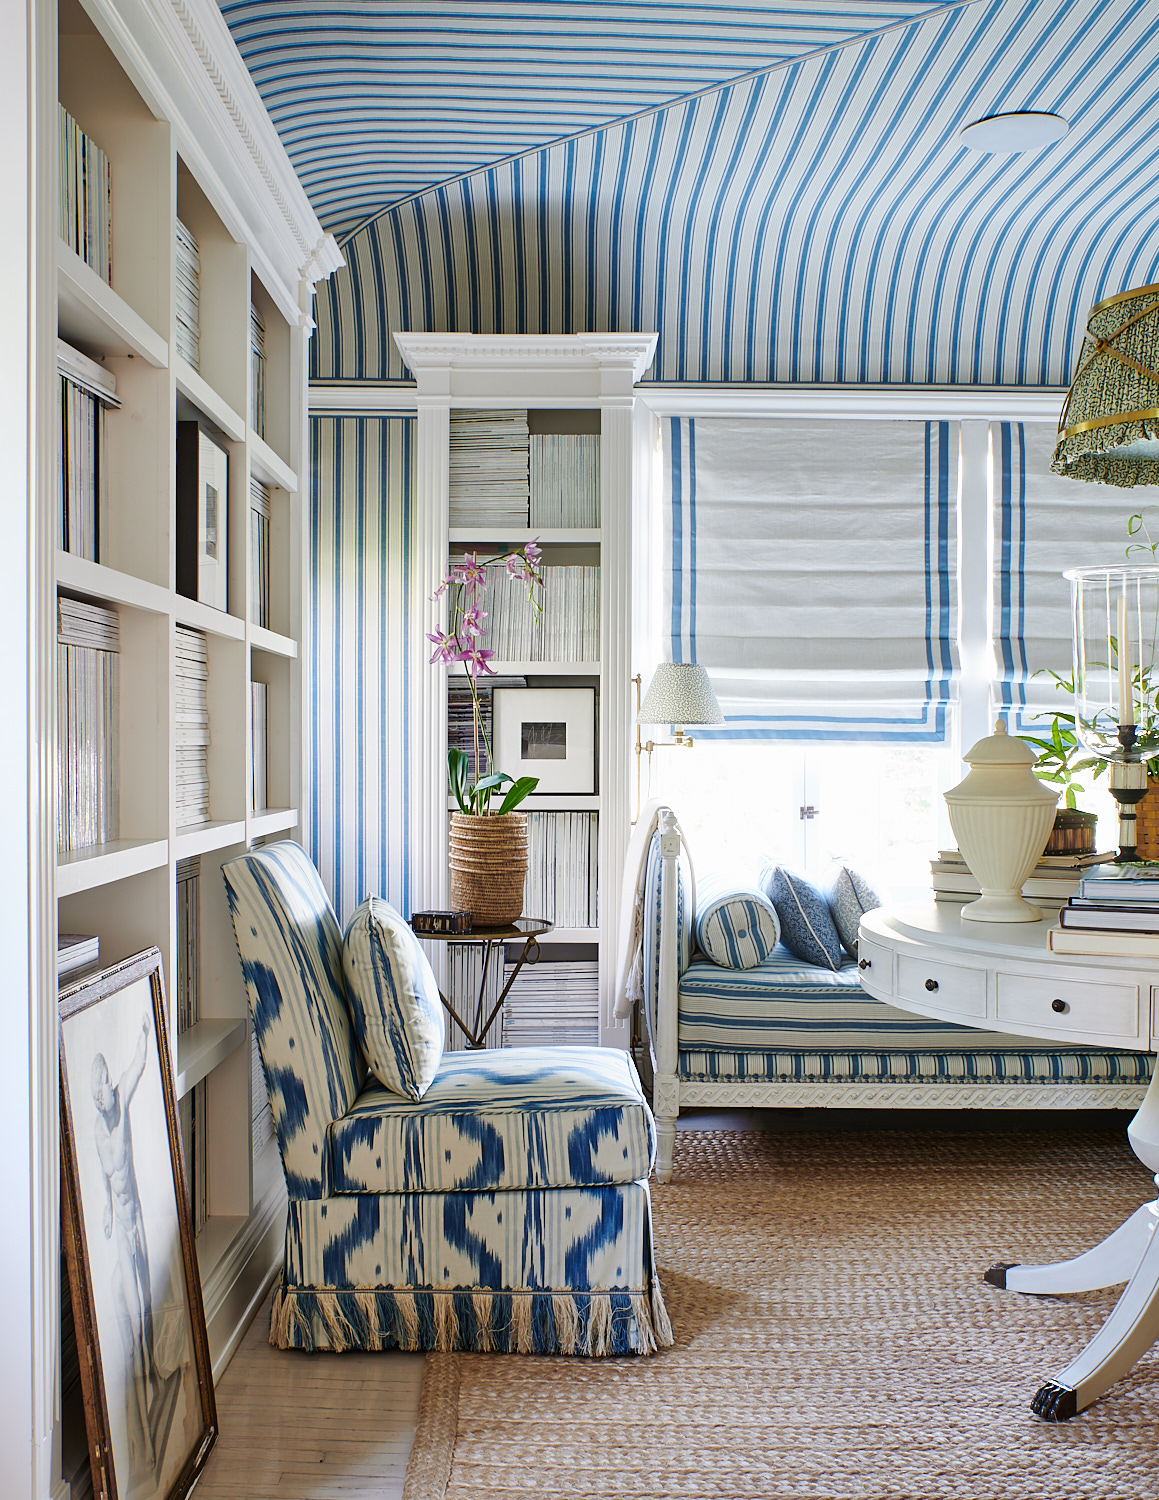 Upholstered chair with tasseled skirt, divan and matching bolster, with upholstered ceiling